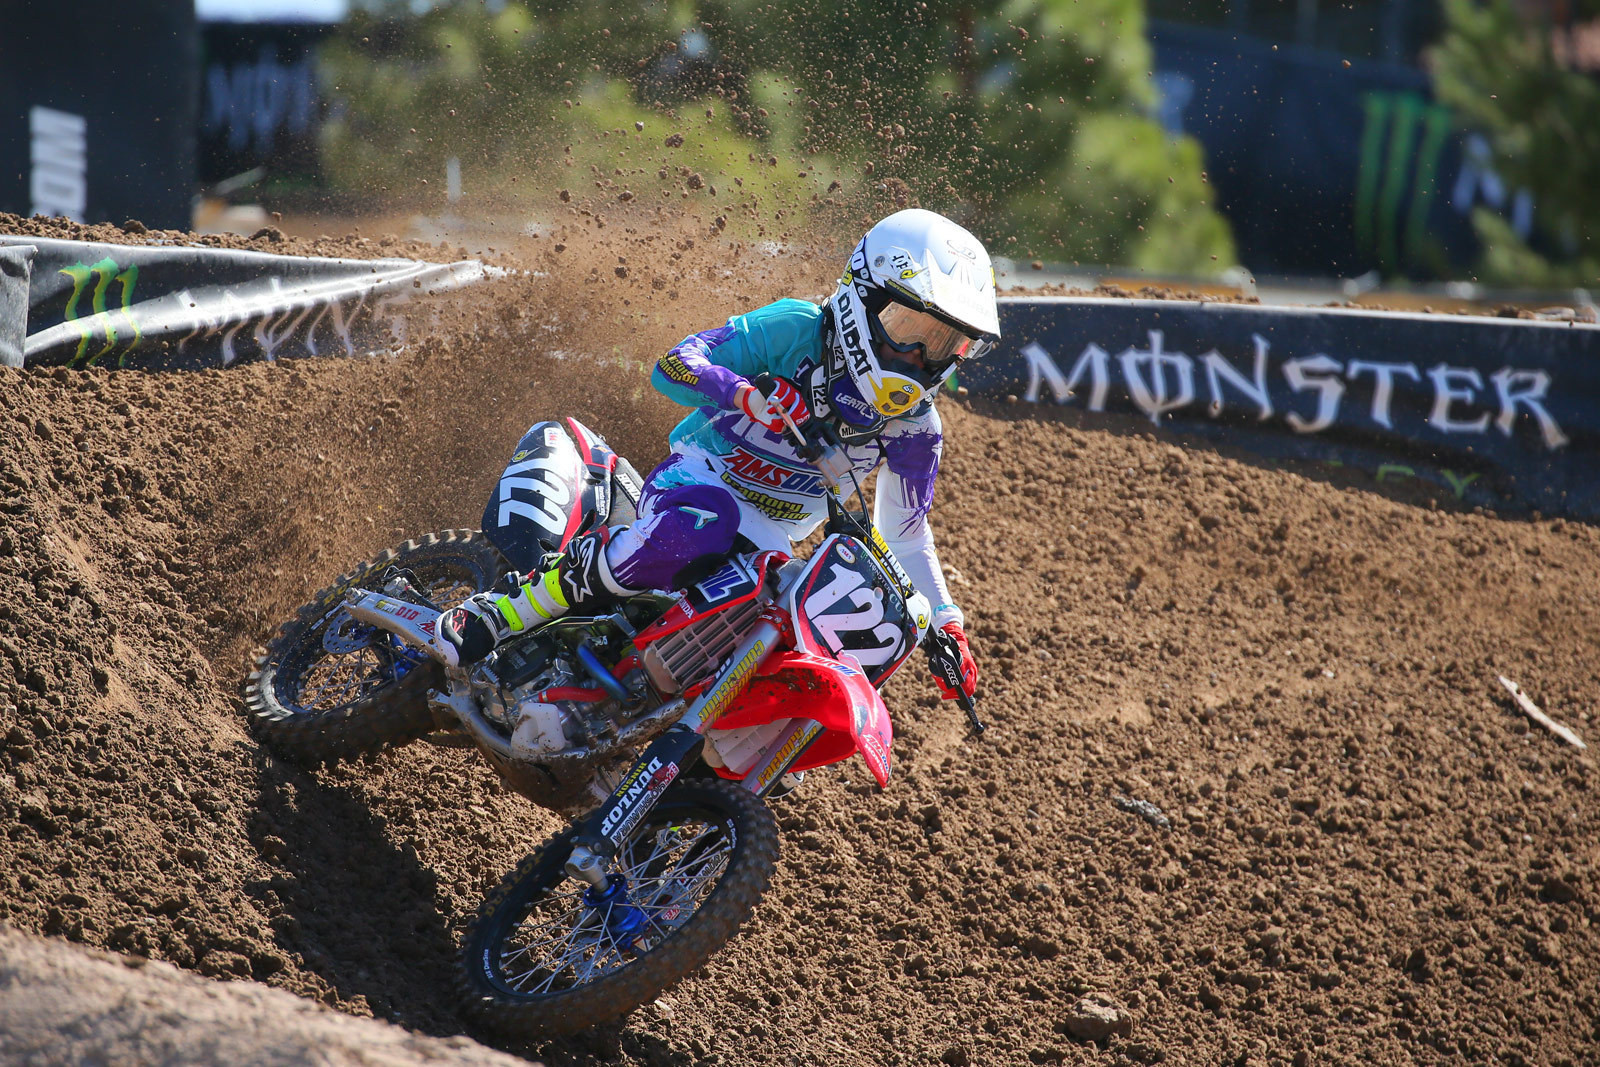 Carson Mumford Out for Monster Energy Cup